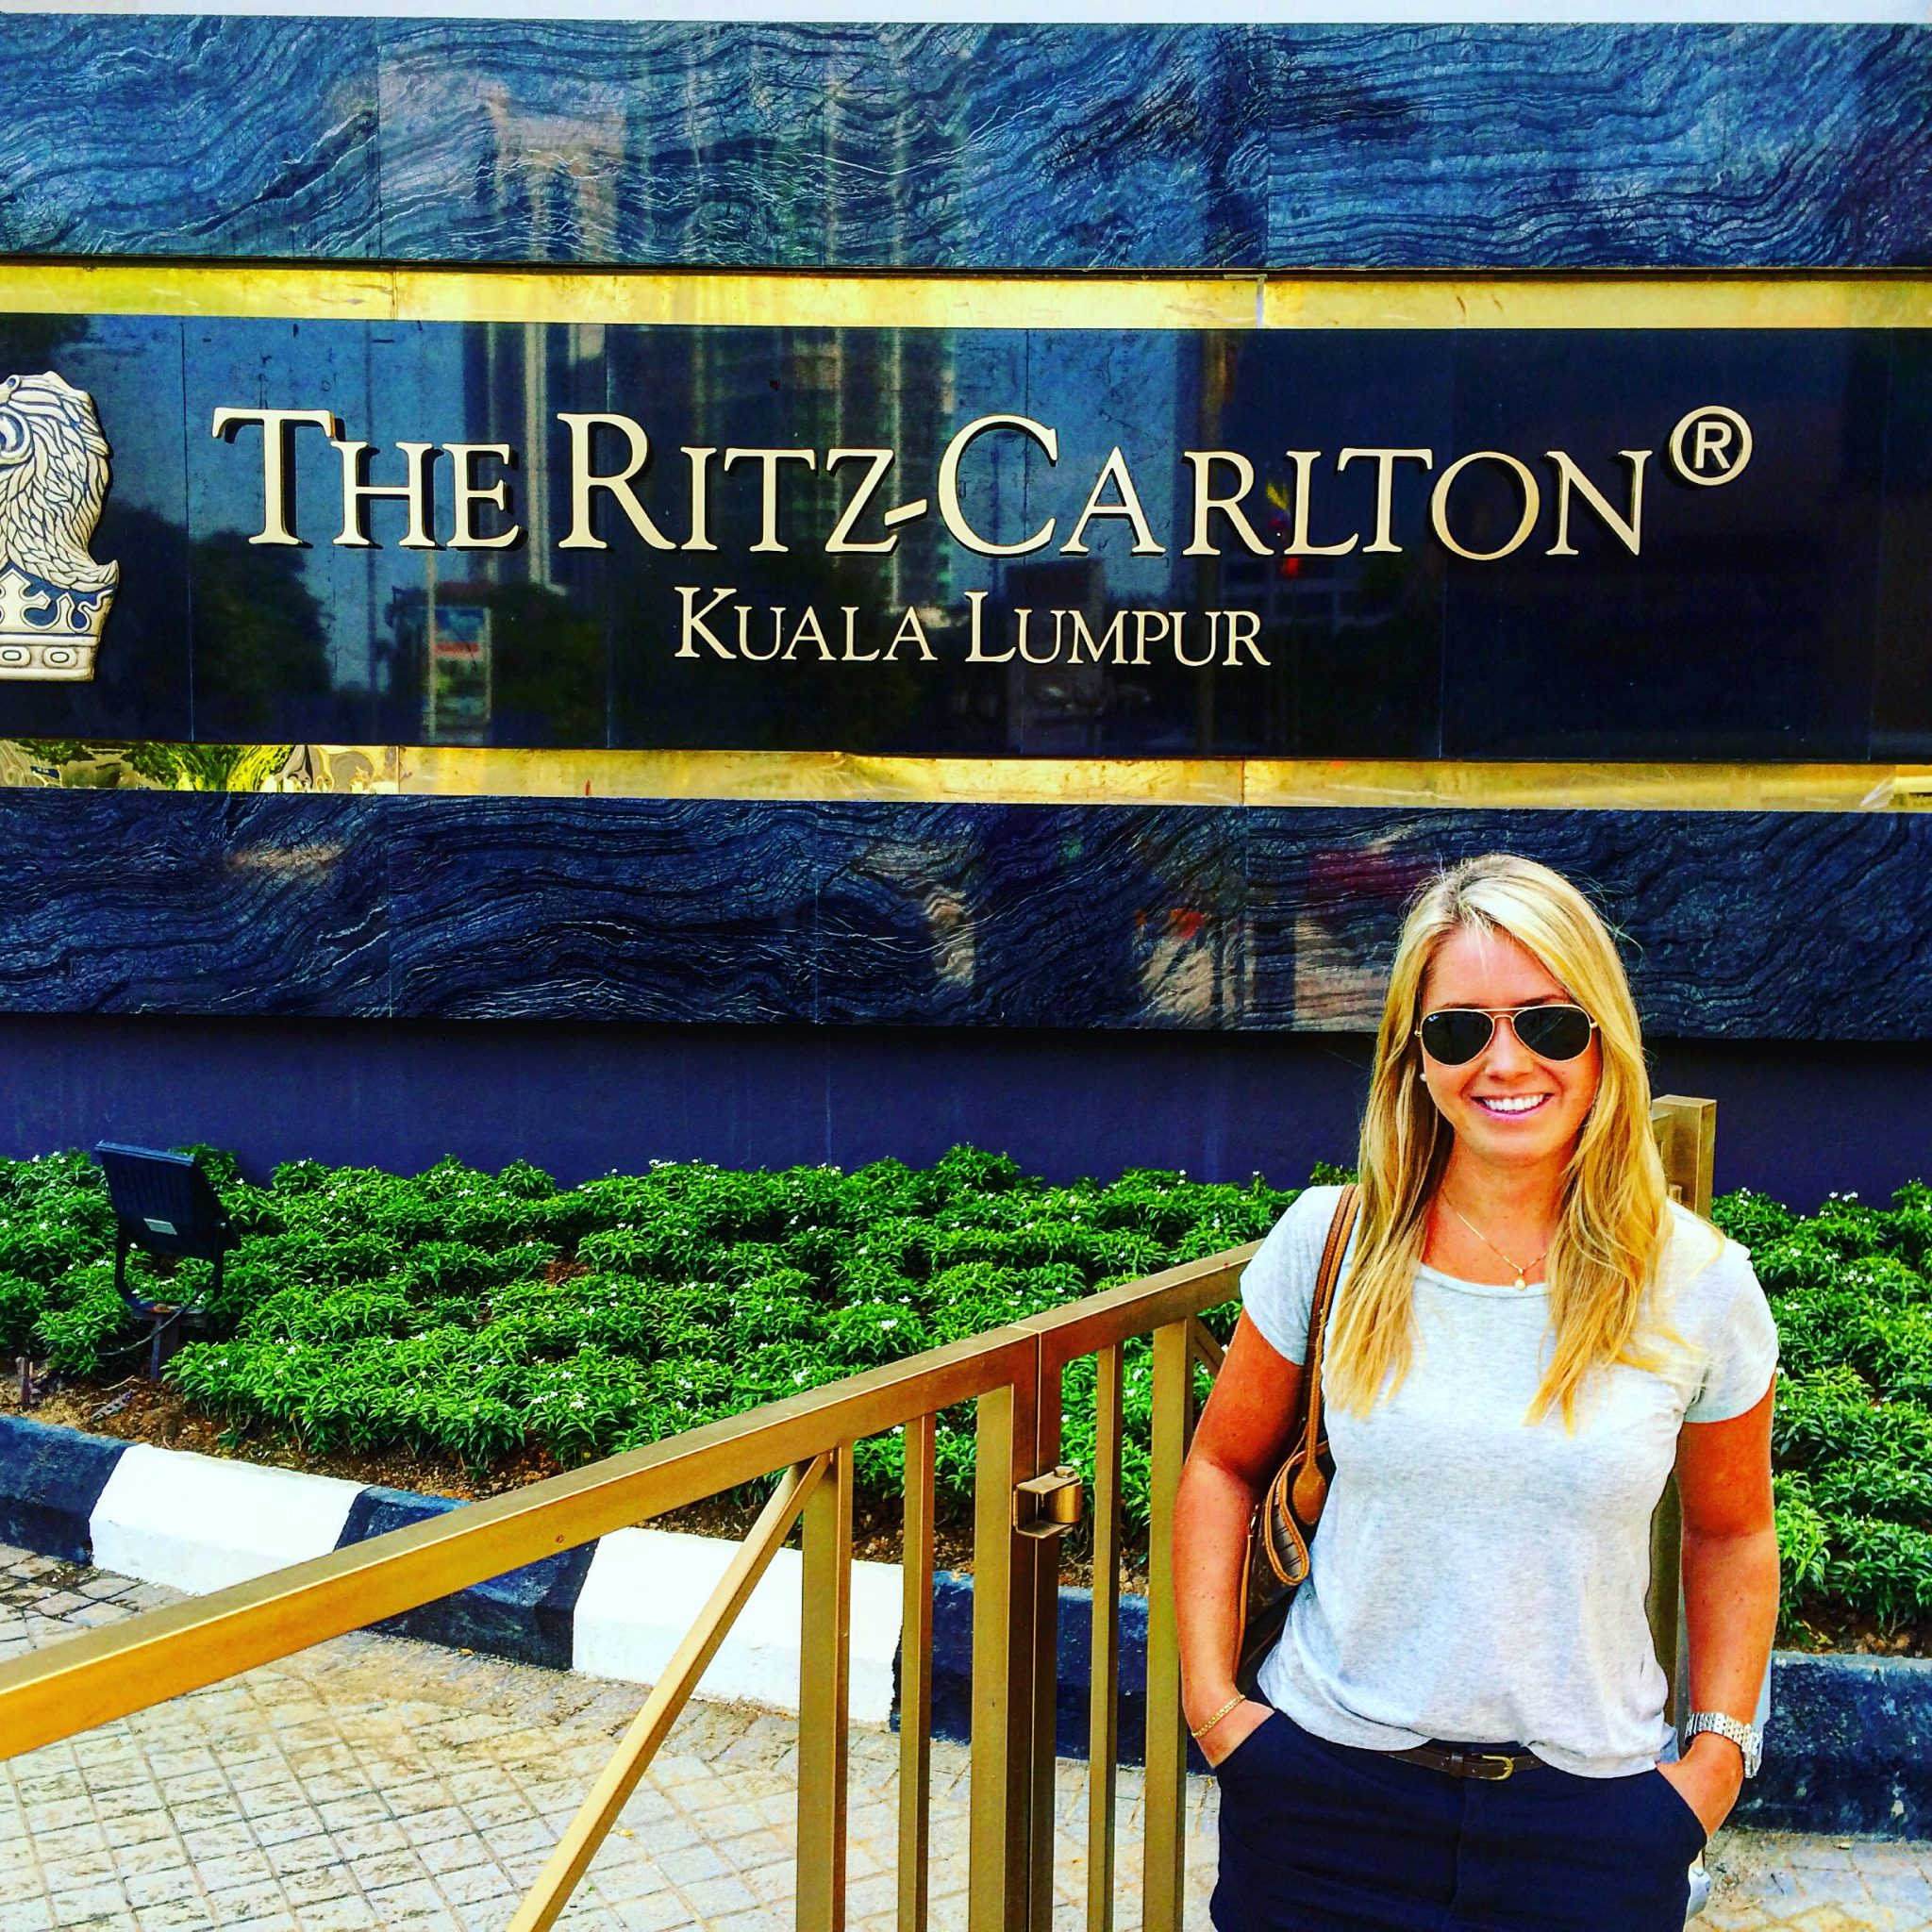 A picture of me standing outside the Ritz Carlton hotel in Kuala Lumpur